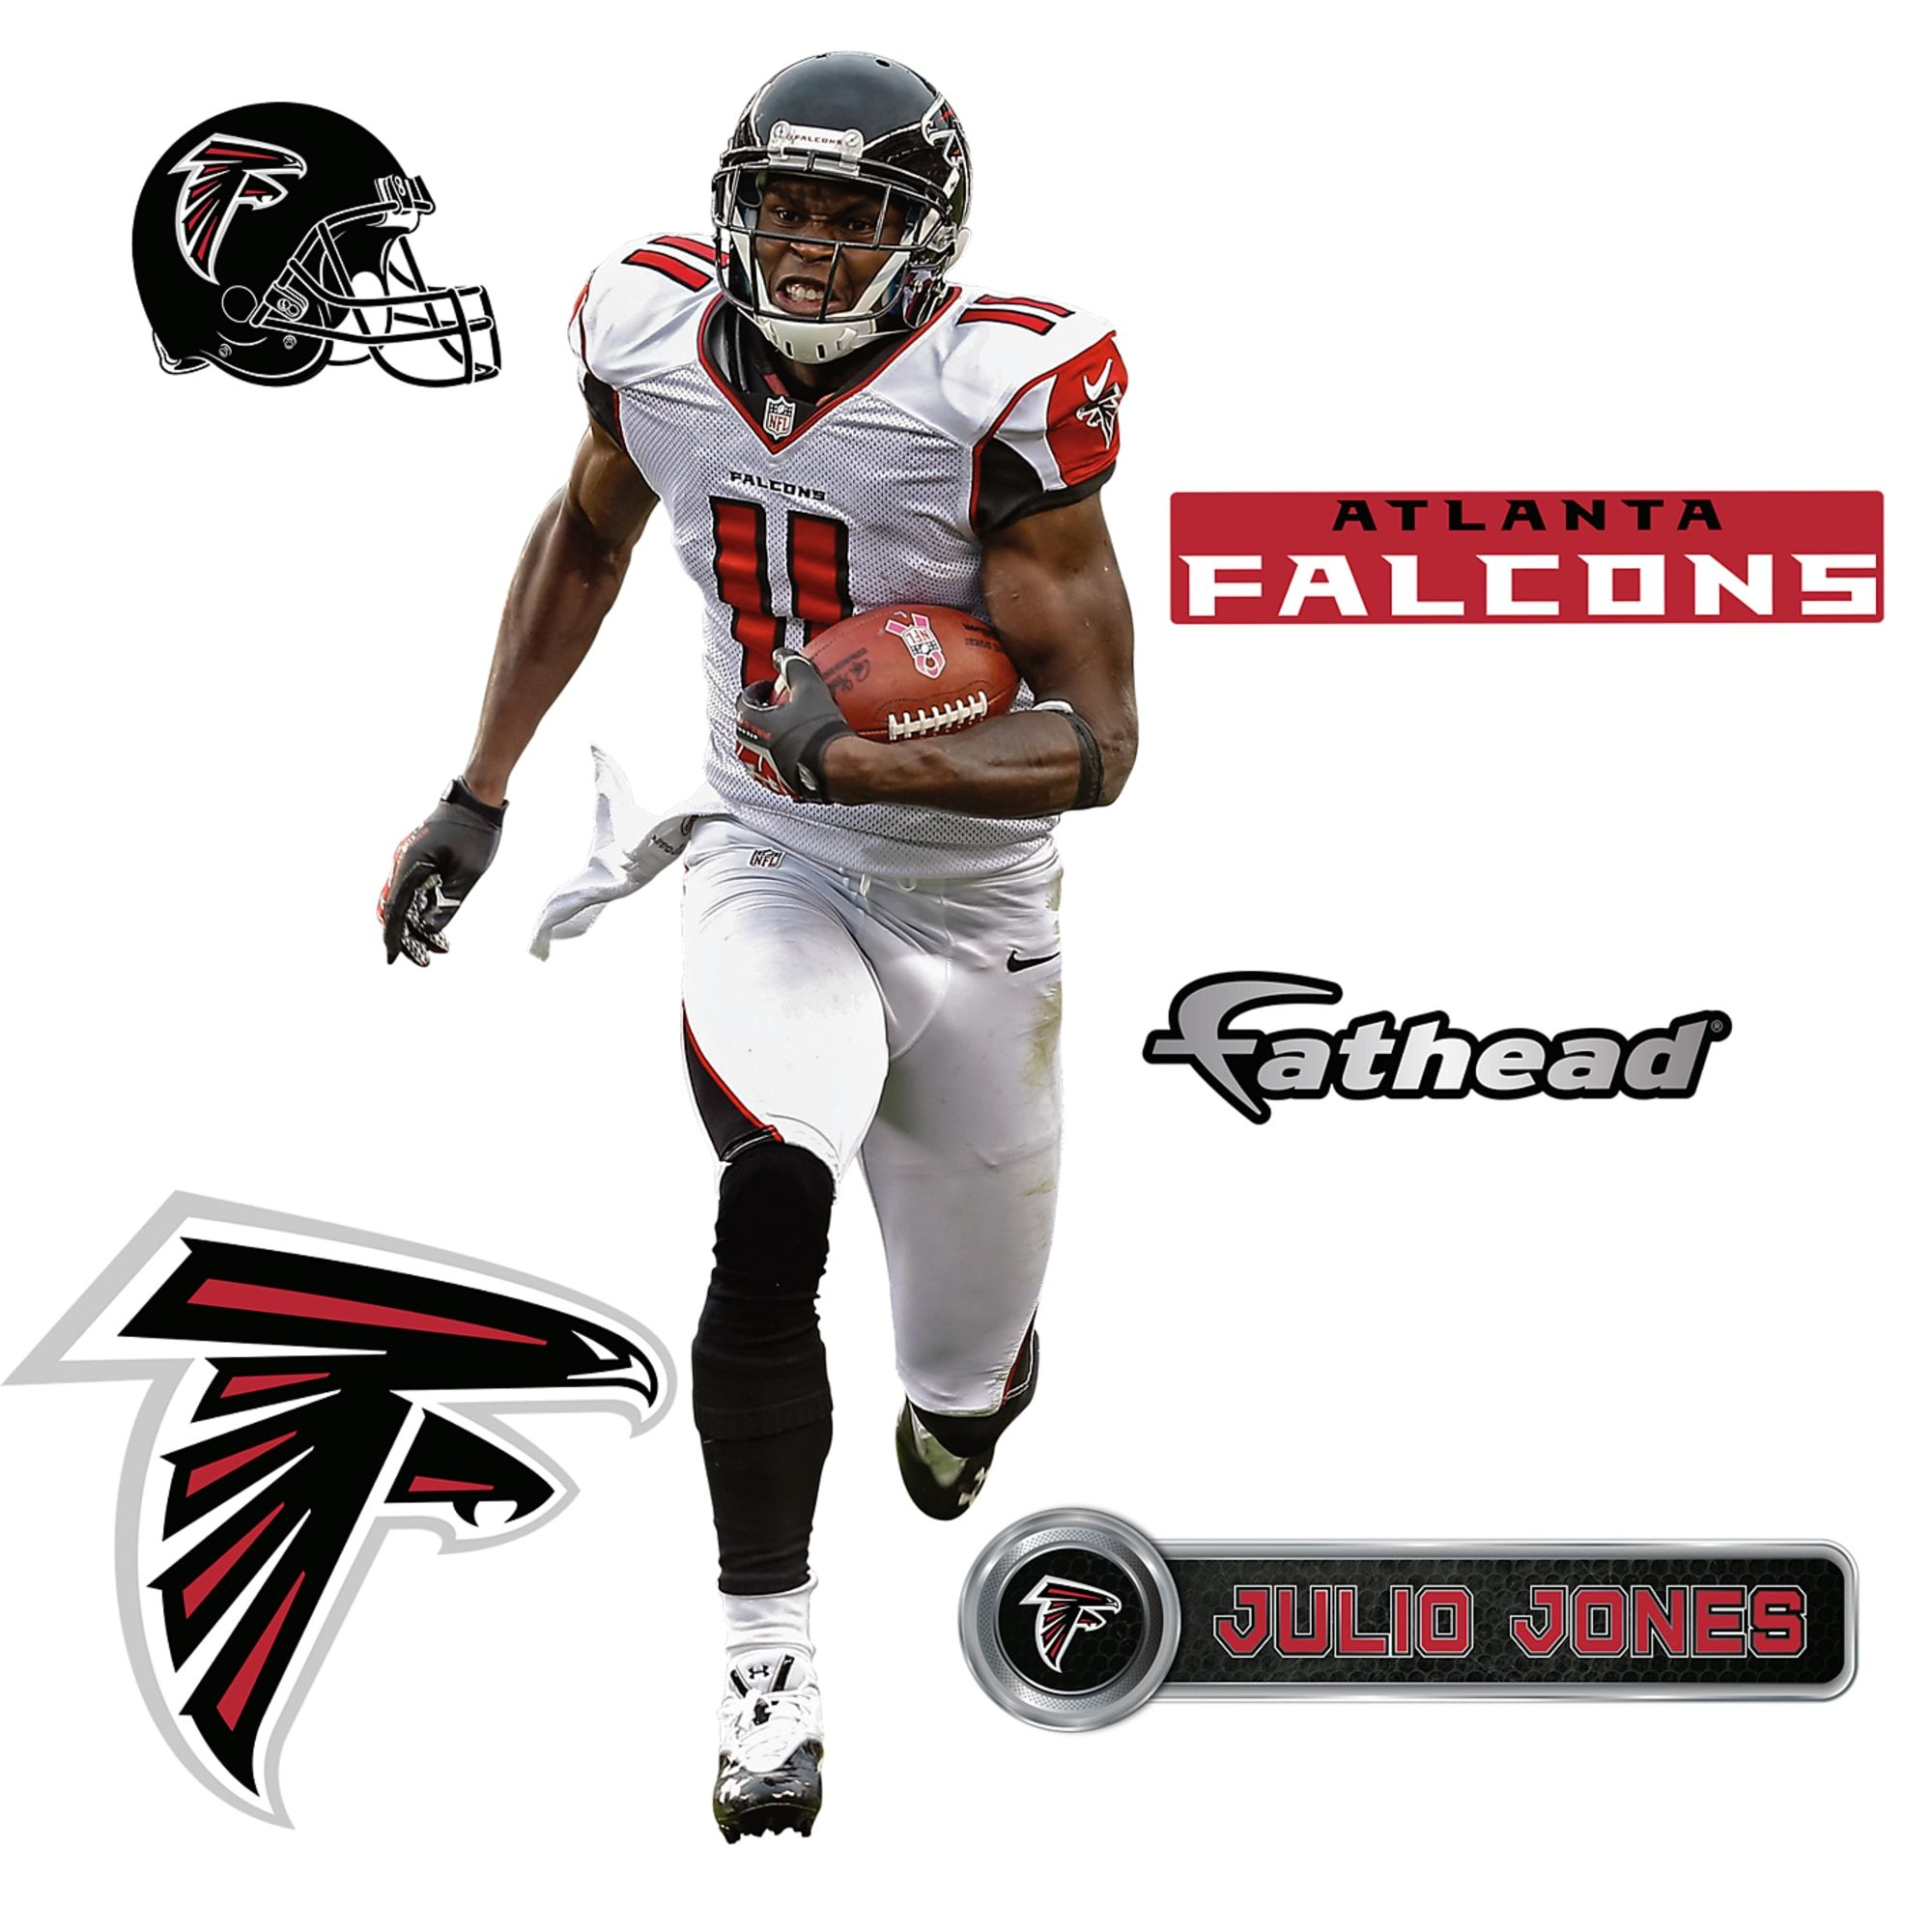 Julio Jones Large Officially Licensed Nfl Removable Wall Decal Removable Wall Decals Julio Jones Removable Wall